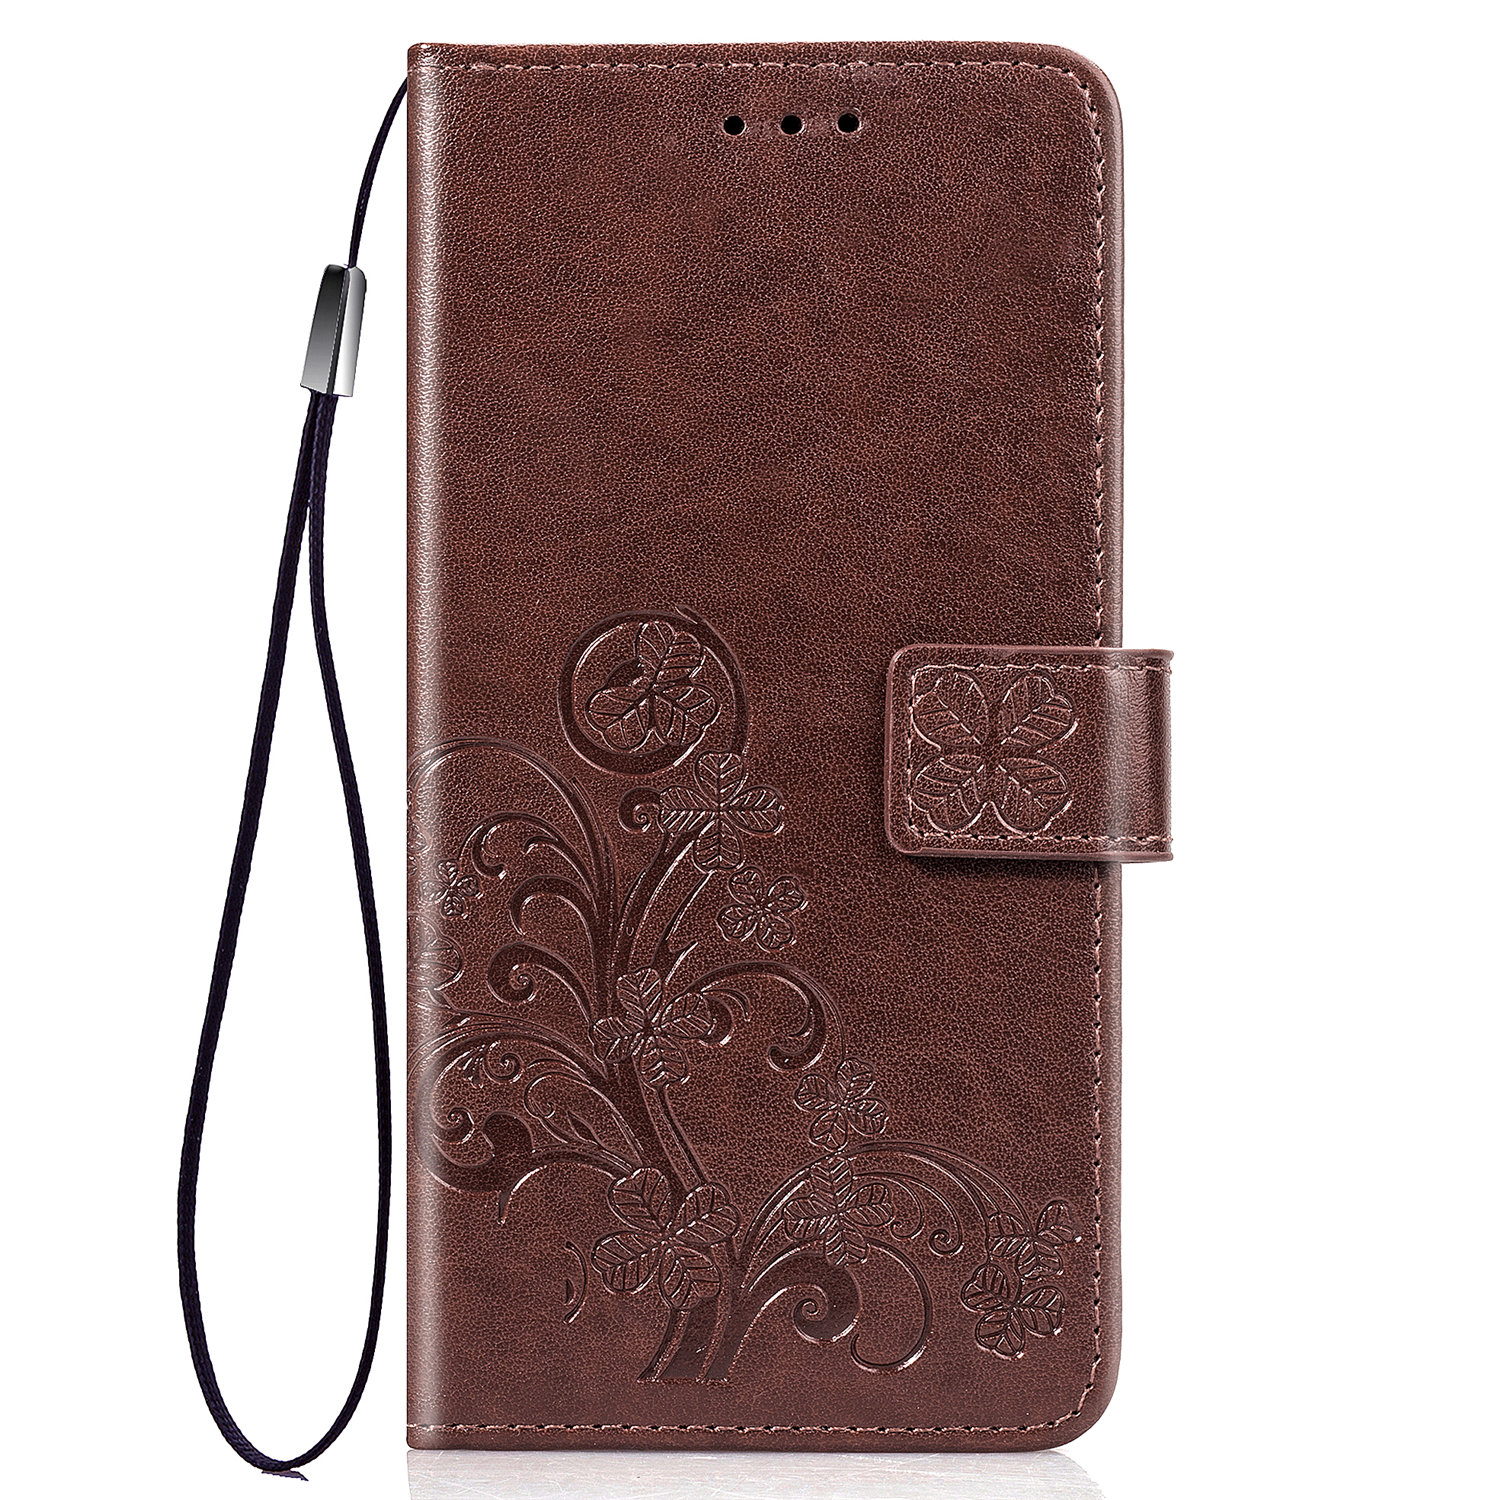 PU Leather <font><b>Case</b></font> <font><b>For</b></font> <font><b>LG</b></font> <font><b>Class</b></font> <font><b>H650E</b></font> LTE H650 <font><b>Case</b></font> Colorful Phone Flip Cover <font><b>For</b></font> <font><b>LG</b></font> Zero H740 F620 F620S F620L H650K <font><b>Case</b></font> image